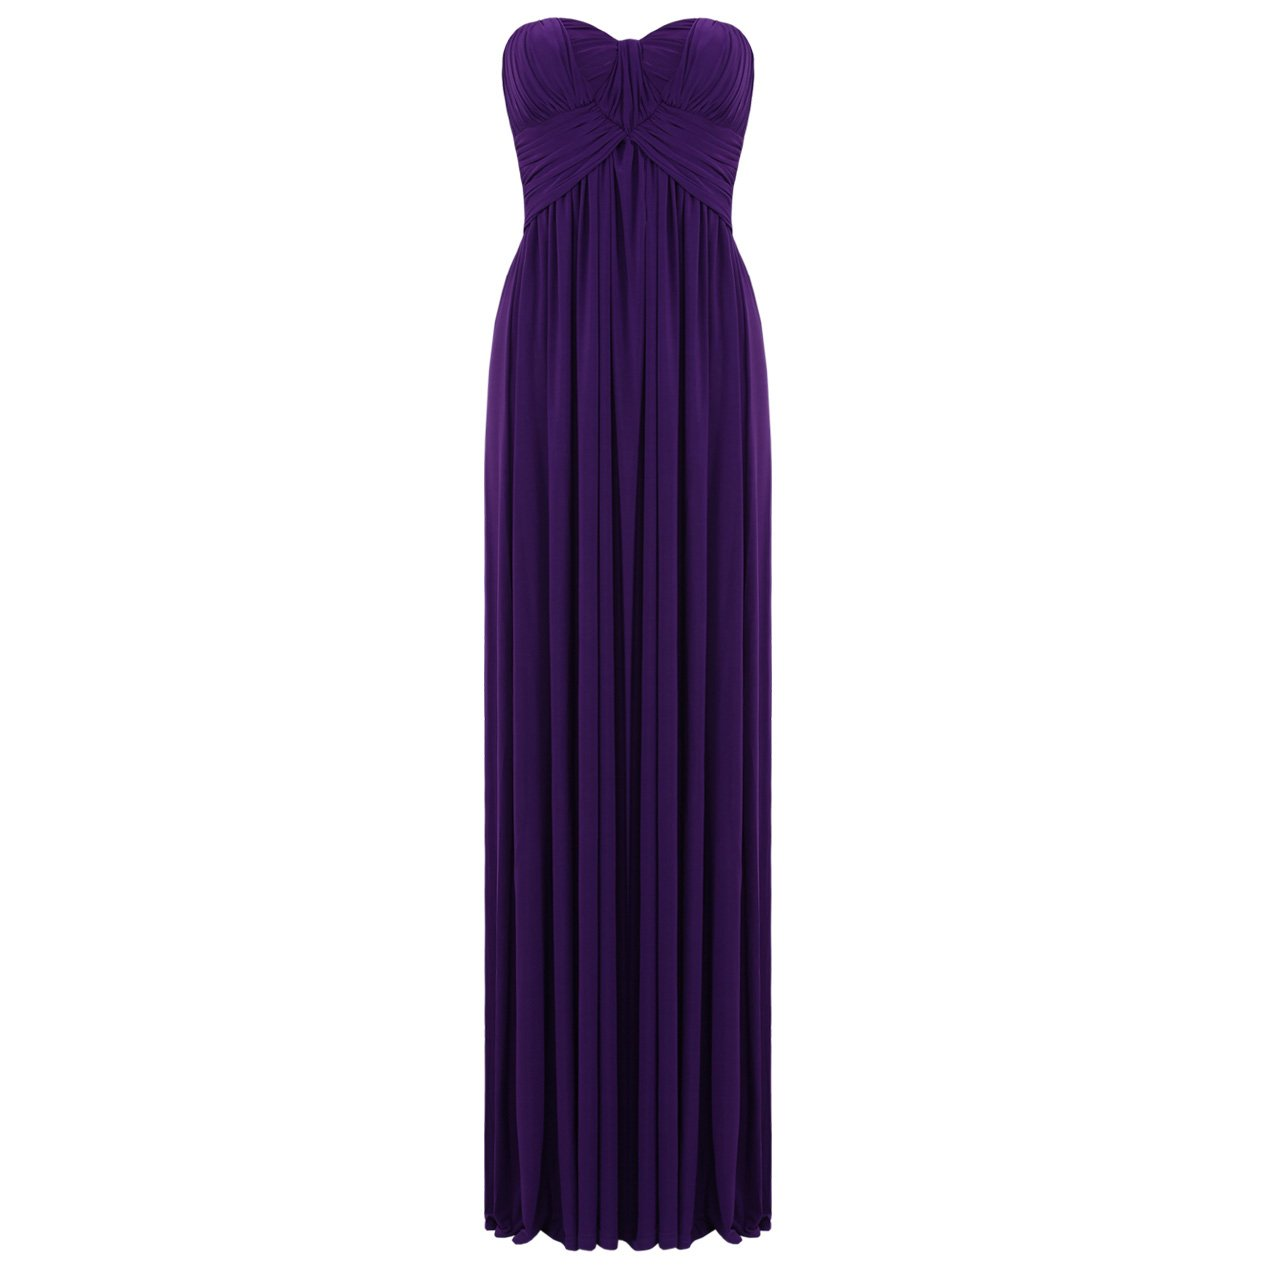 JESSICA ALBA PURPLE LADIES STRAPLESS LONG SUMMER EVENING PARTY PROM GOWN MAXI DRESS UK 10-12, US 6-8